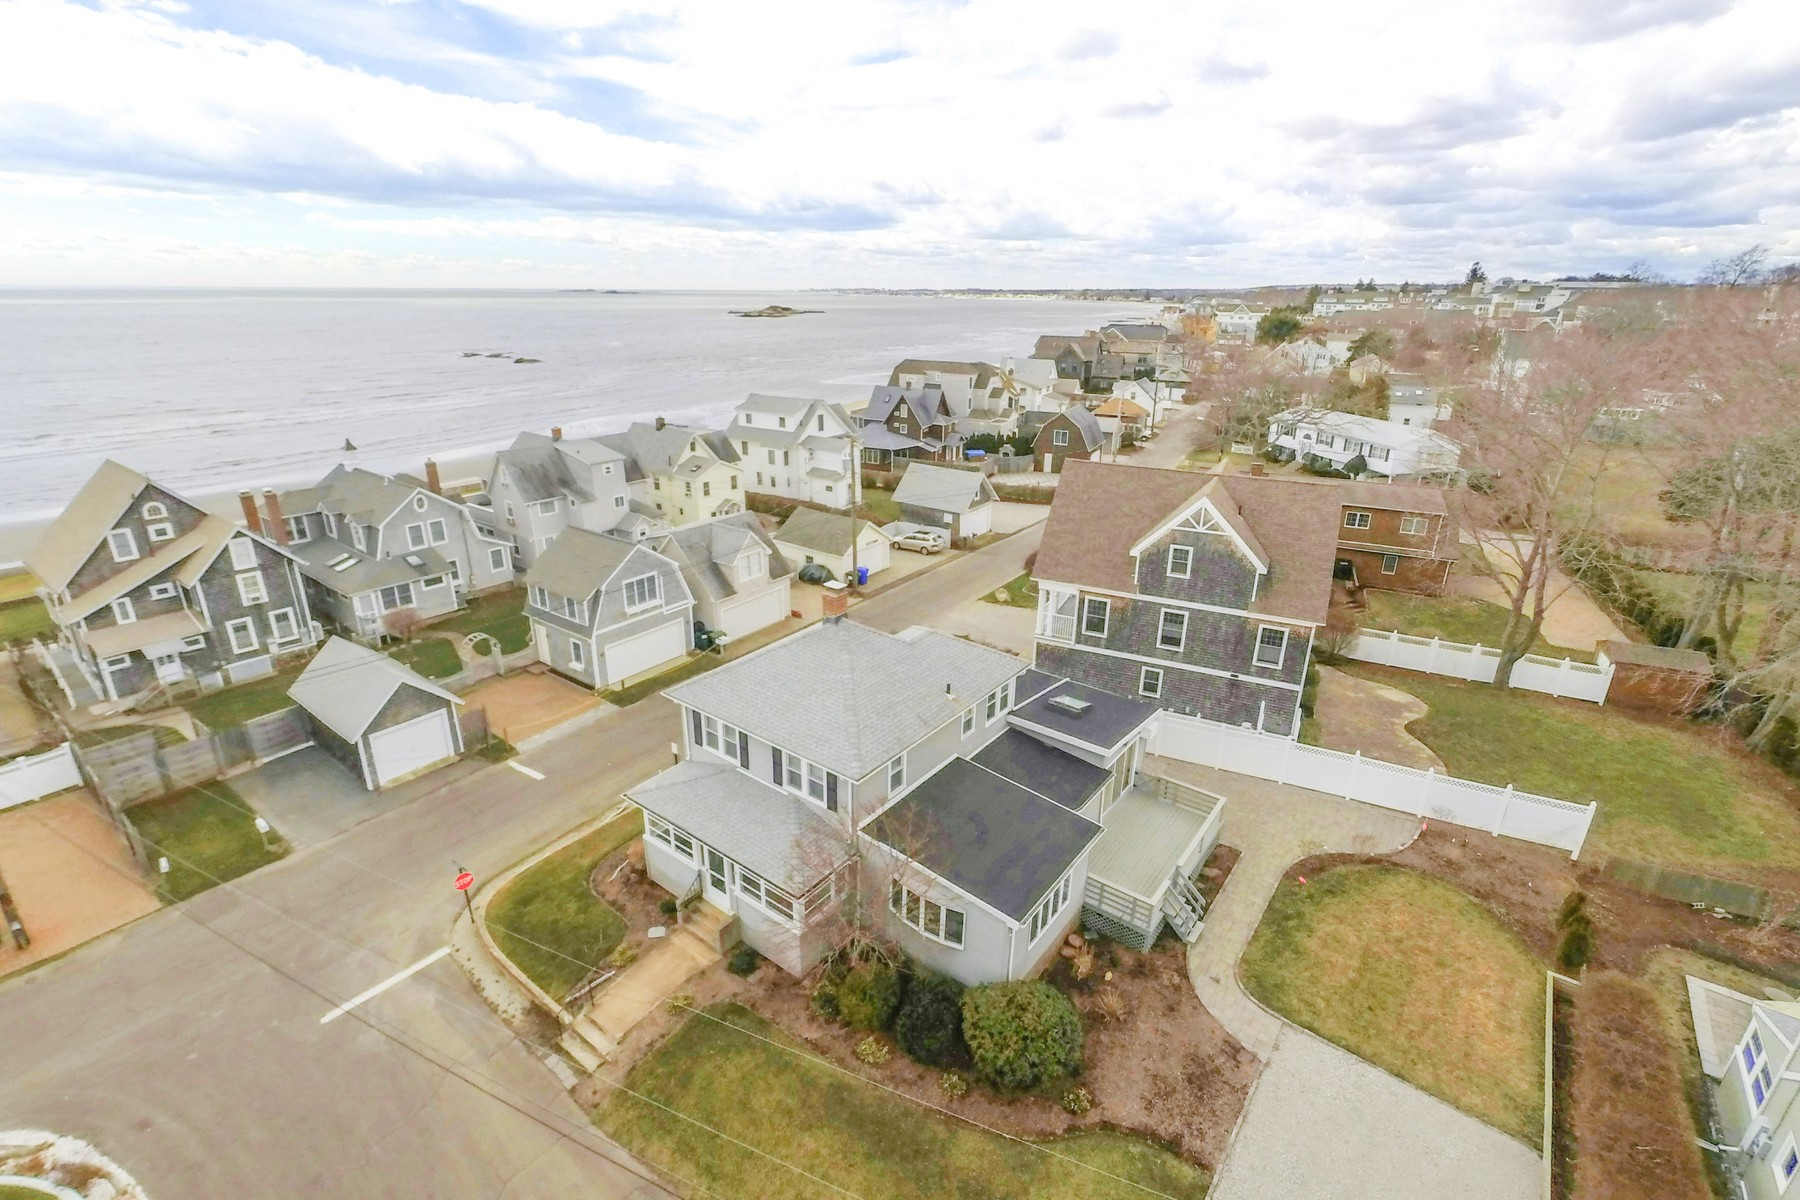 Maison unifamiliale pour l Vente à Enjoy a private beach community lifestyle 125 2nd Avenue Westbrook, Connecticut, 06498 États-Unis